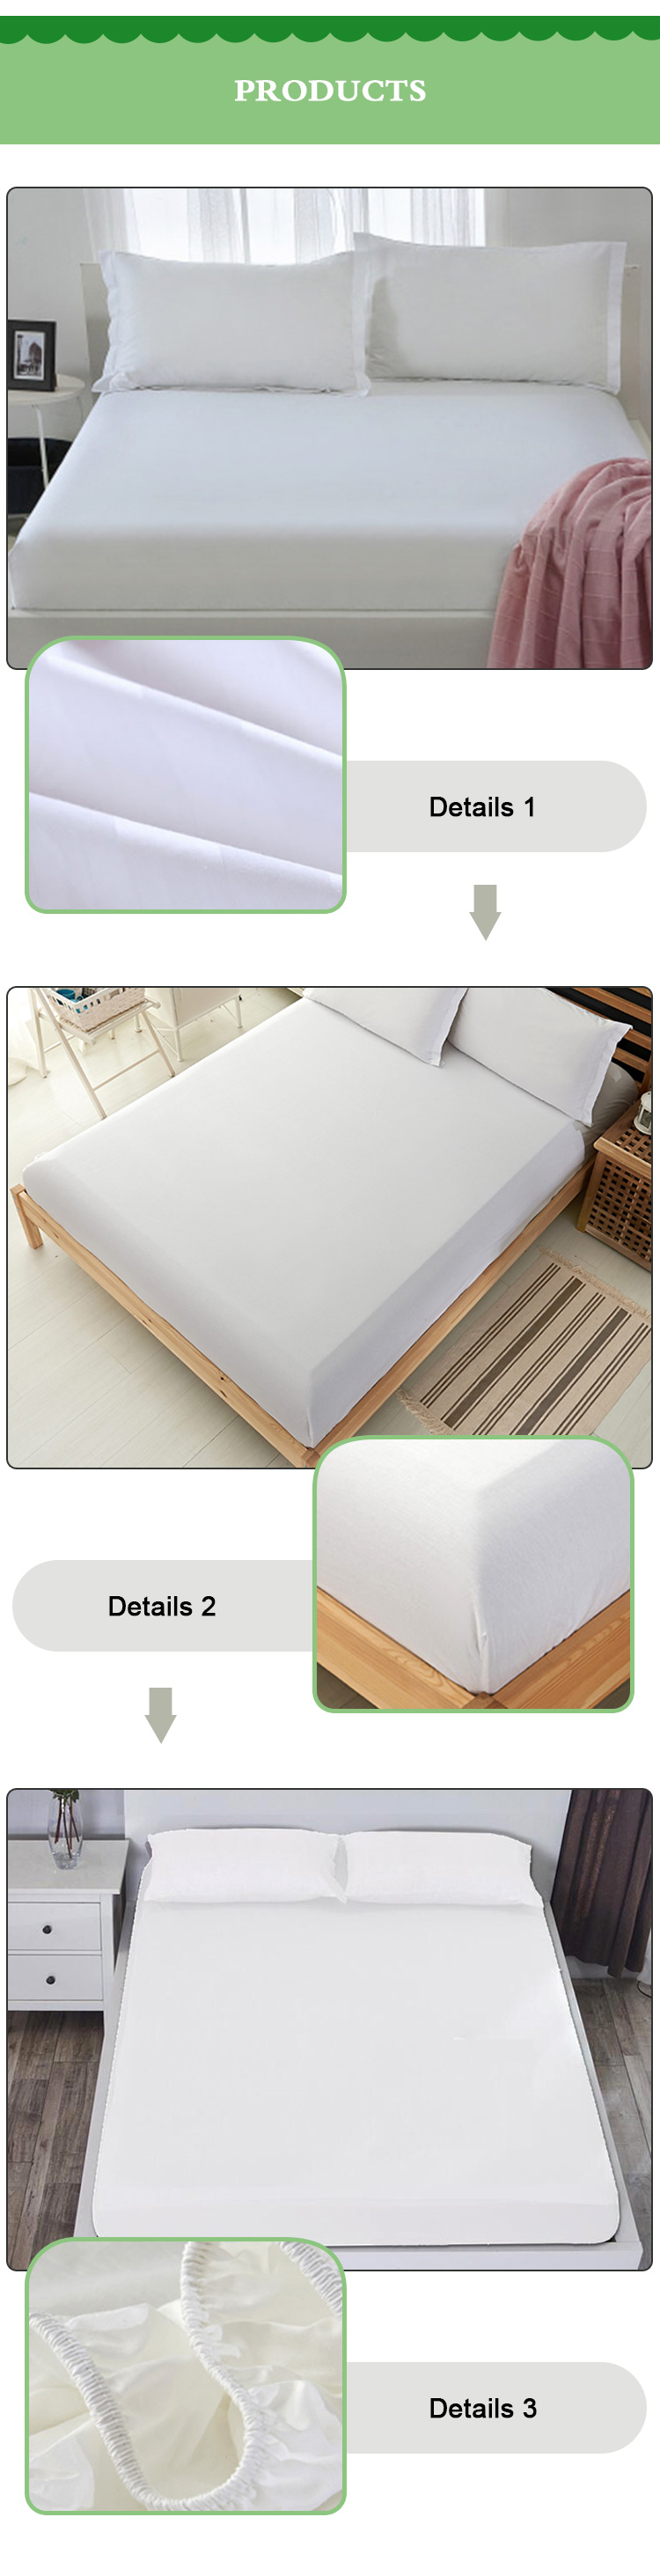 Bamboo Waterproof fitted mattress pad protector cover full size bed topper